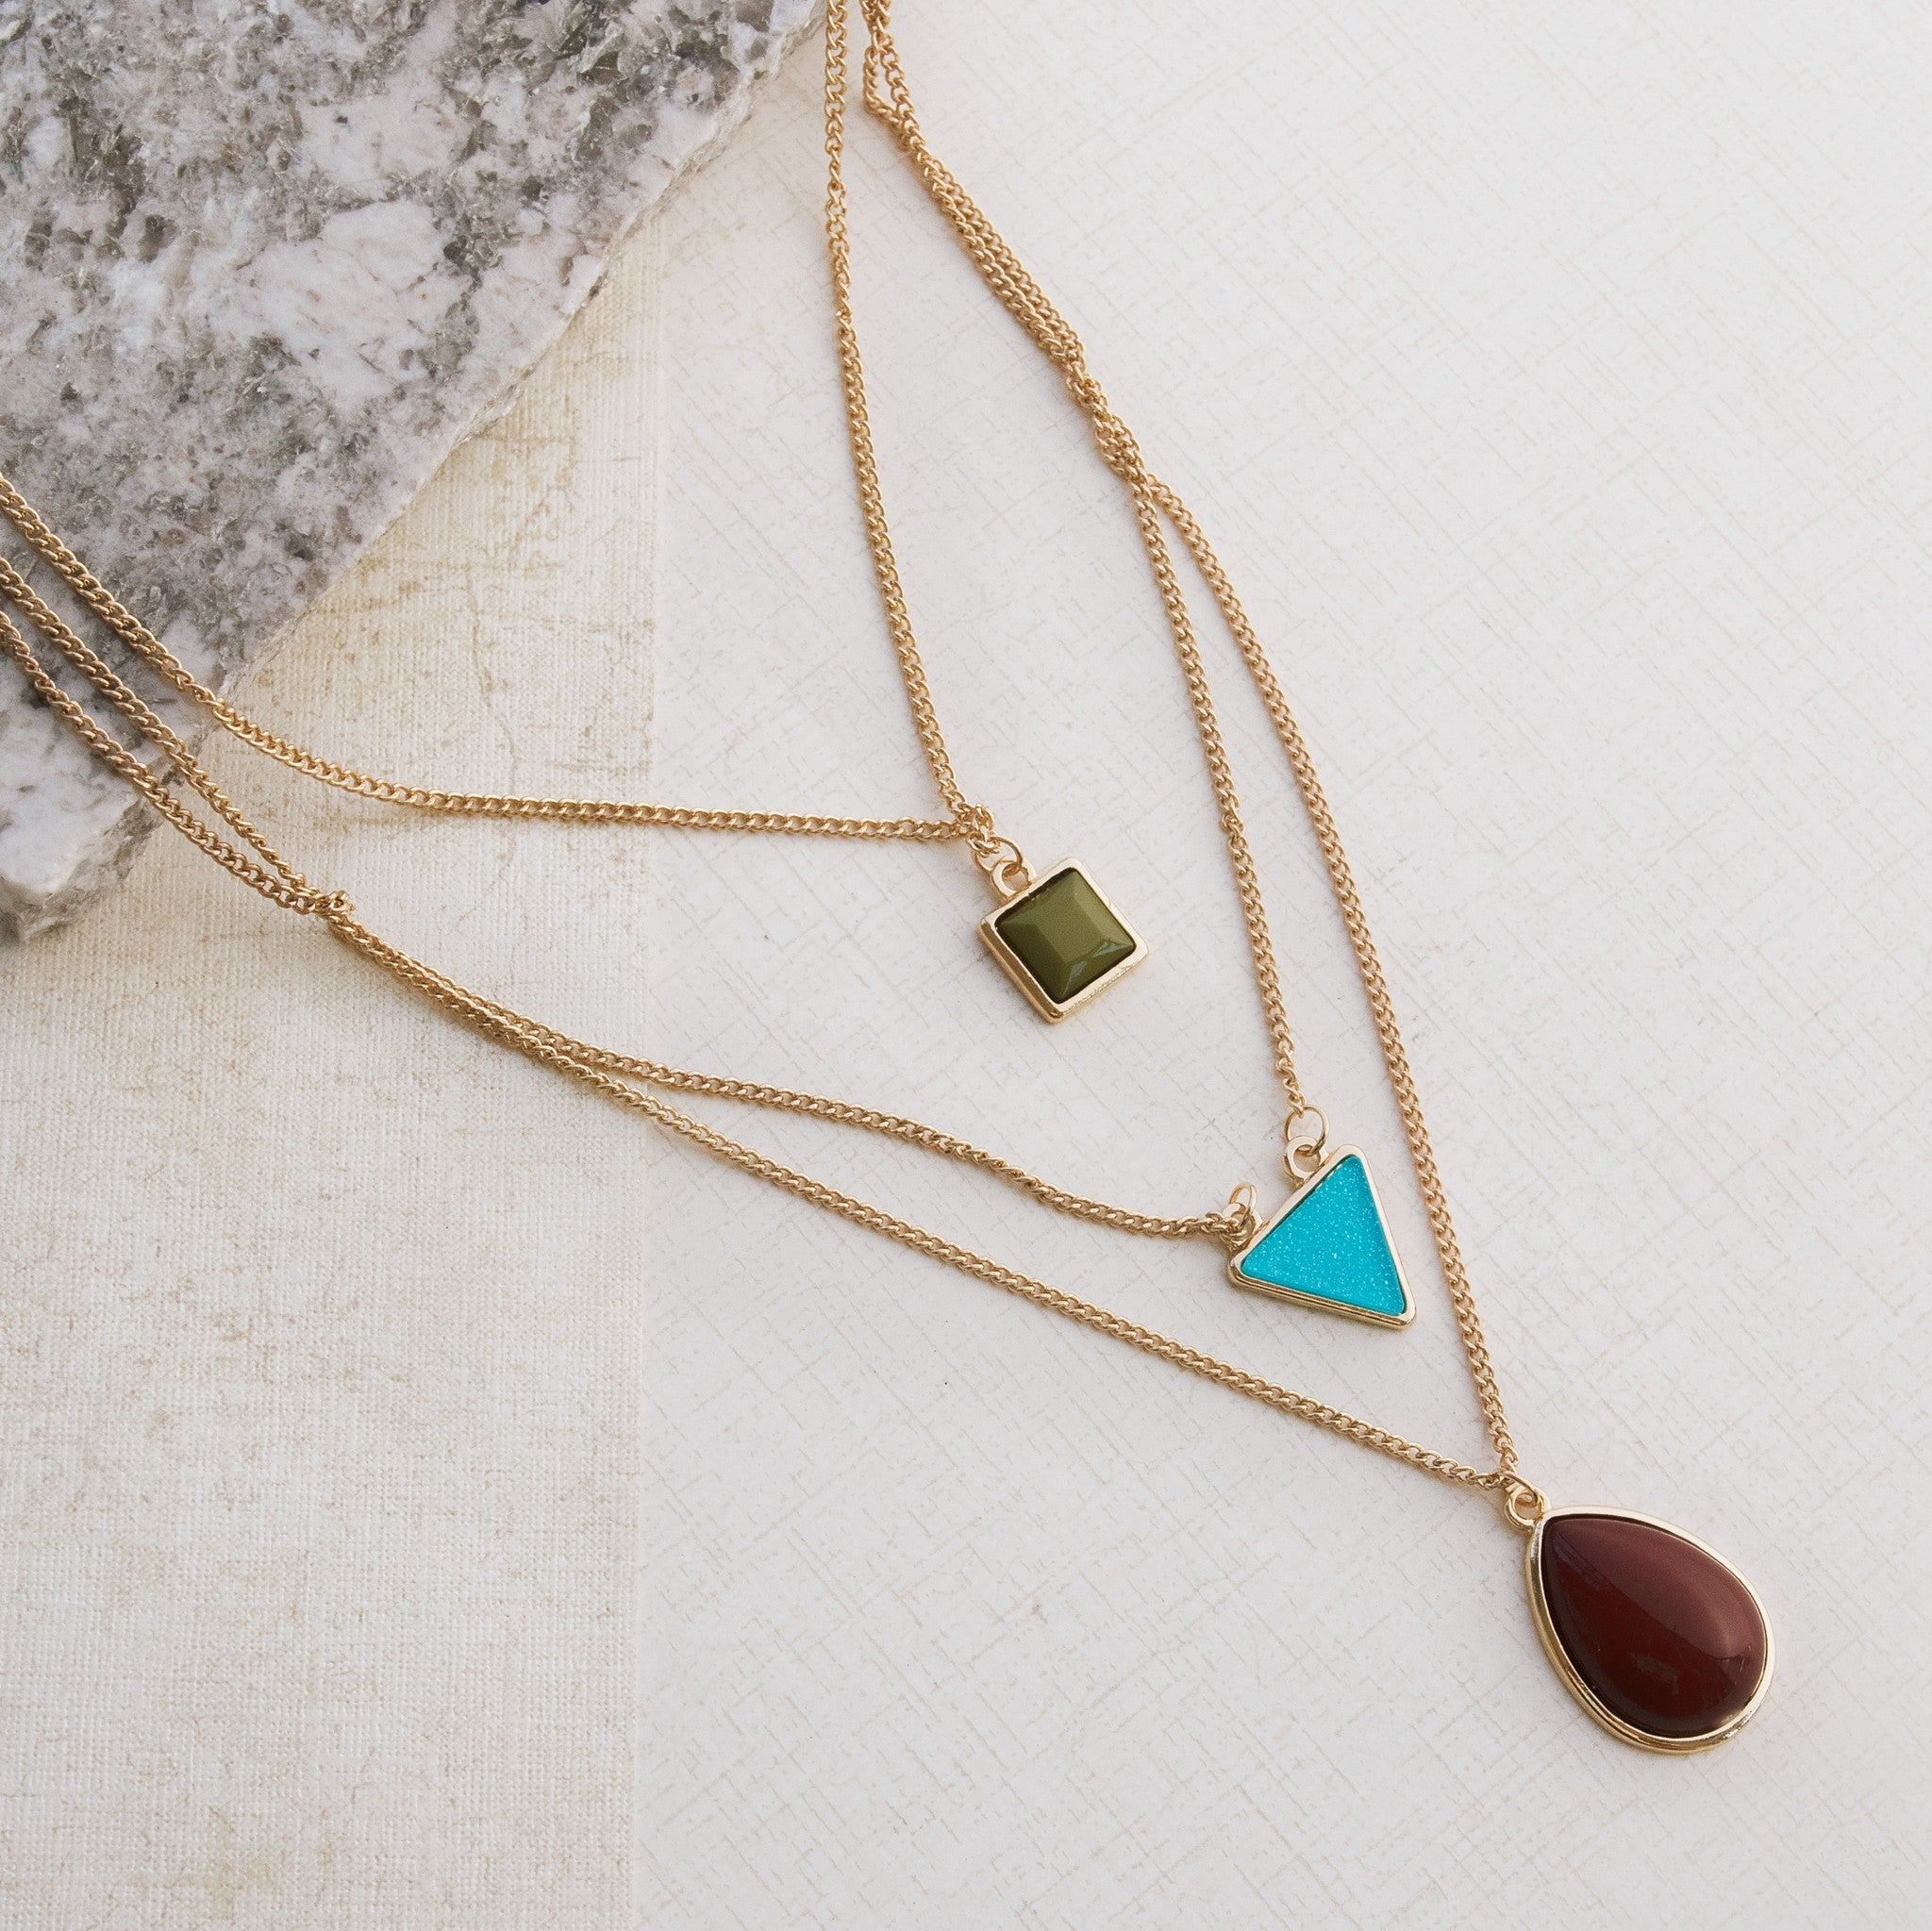 Triple Play Gold Necklace